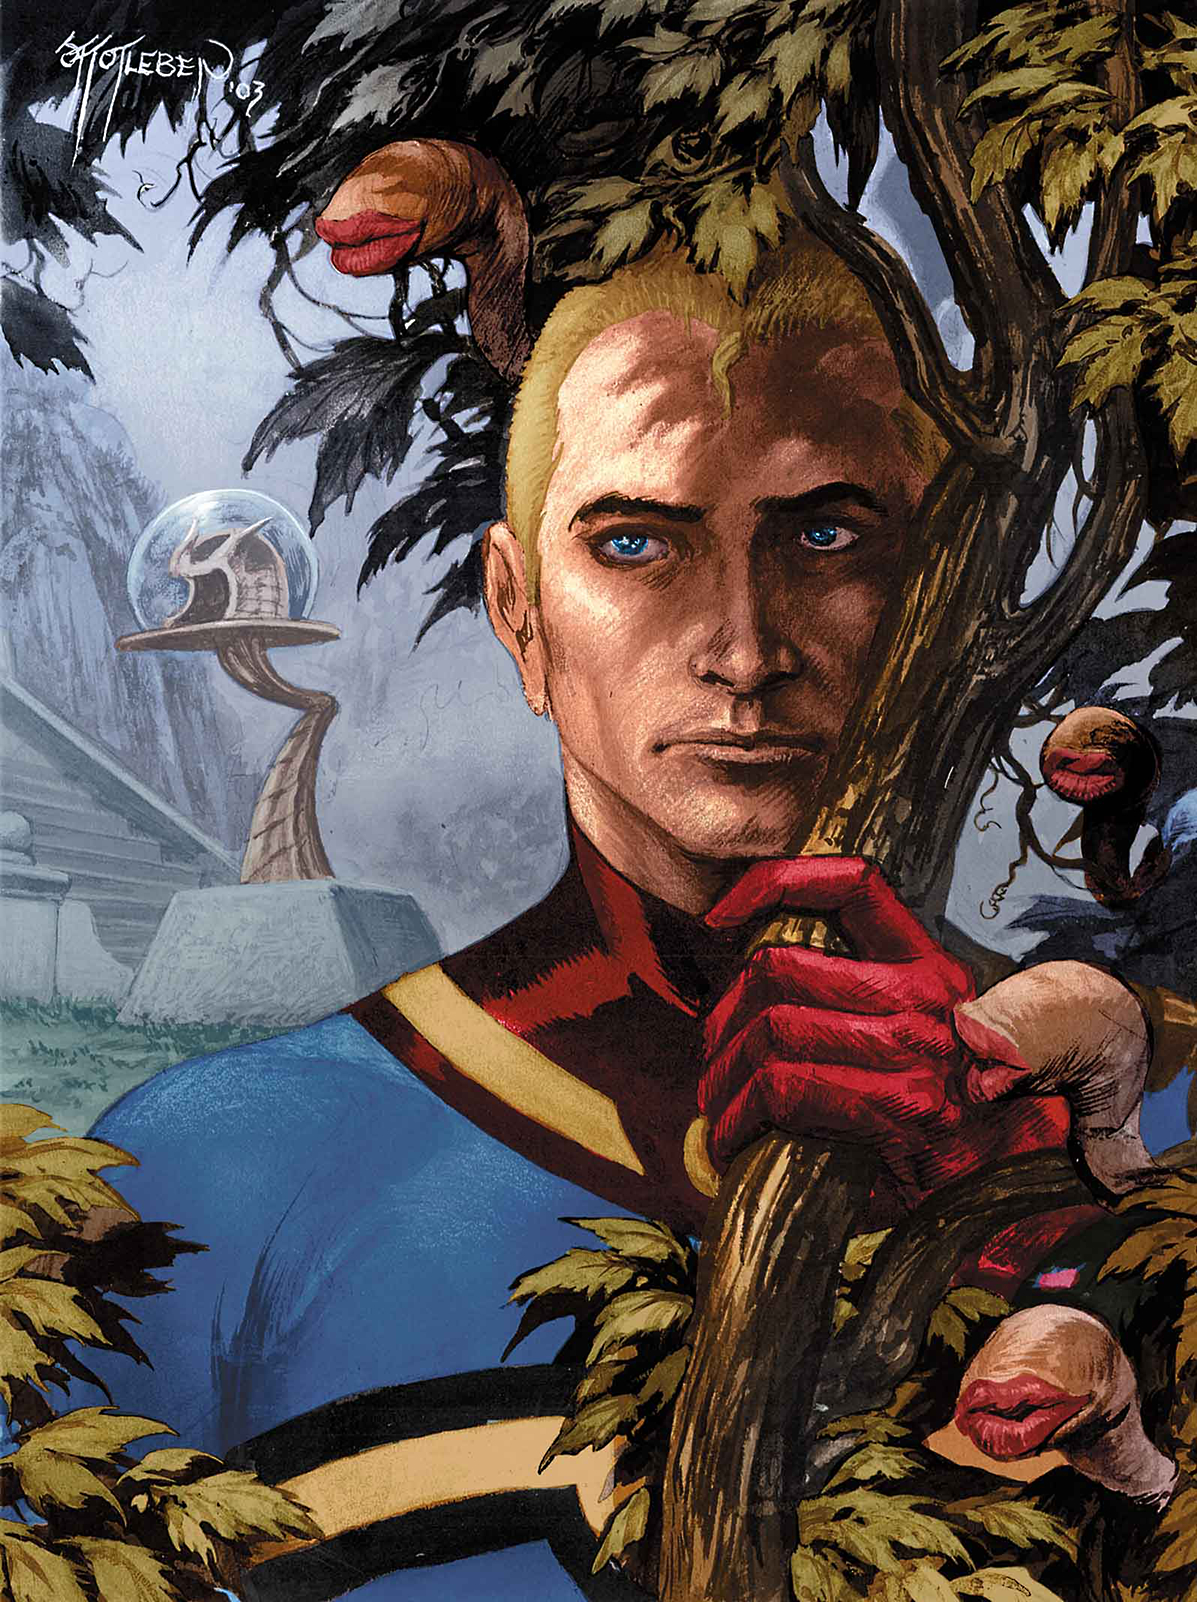 MIRACLEMAN #13 (MR)